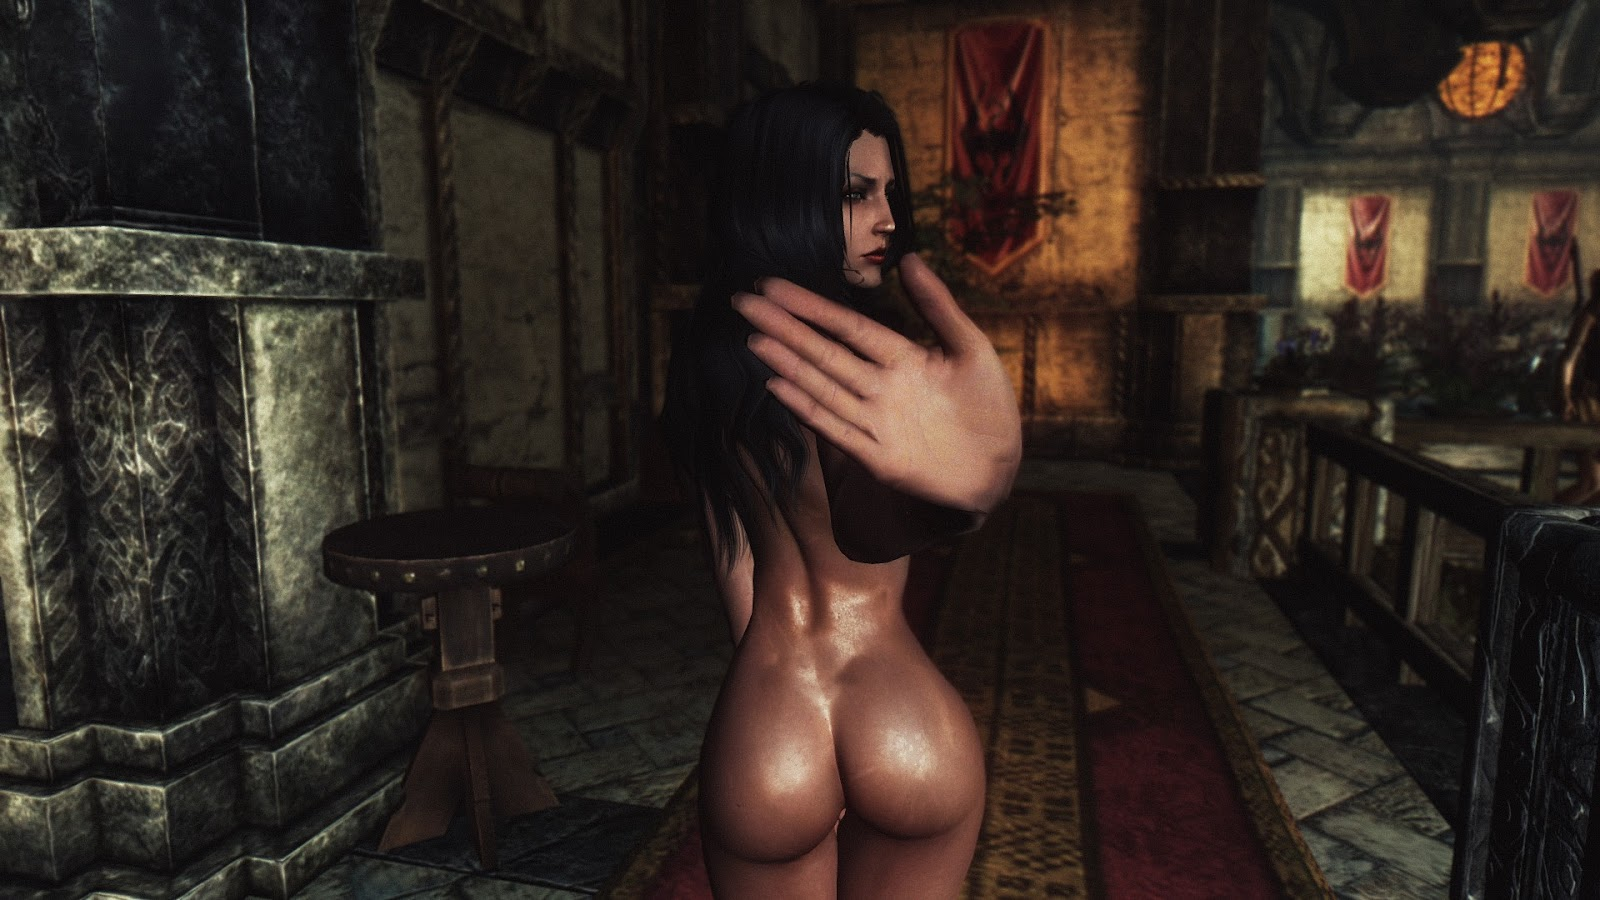 Naked pic of skyrim women and sex sexy gallery